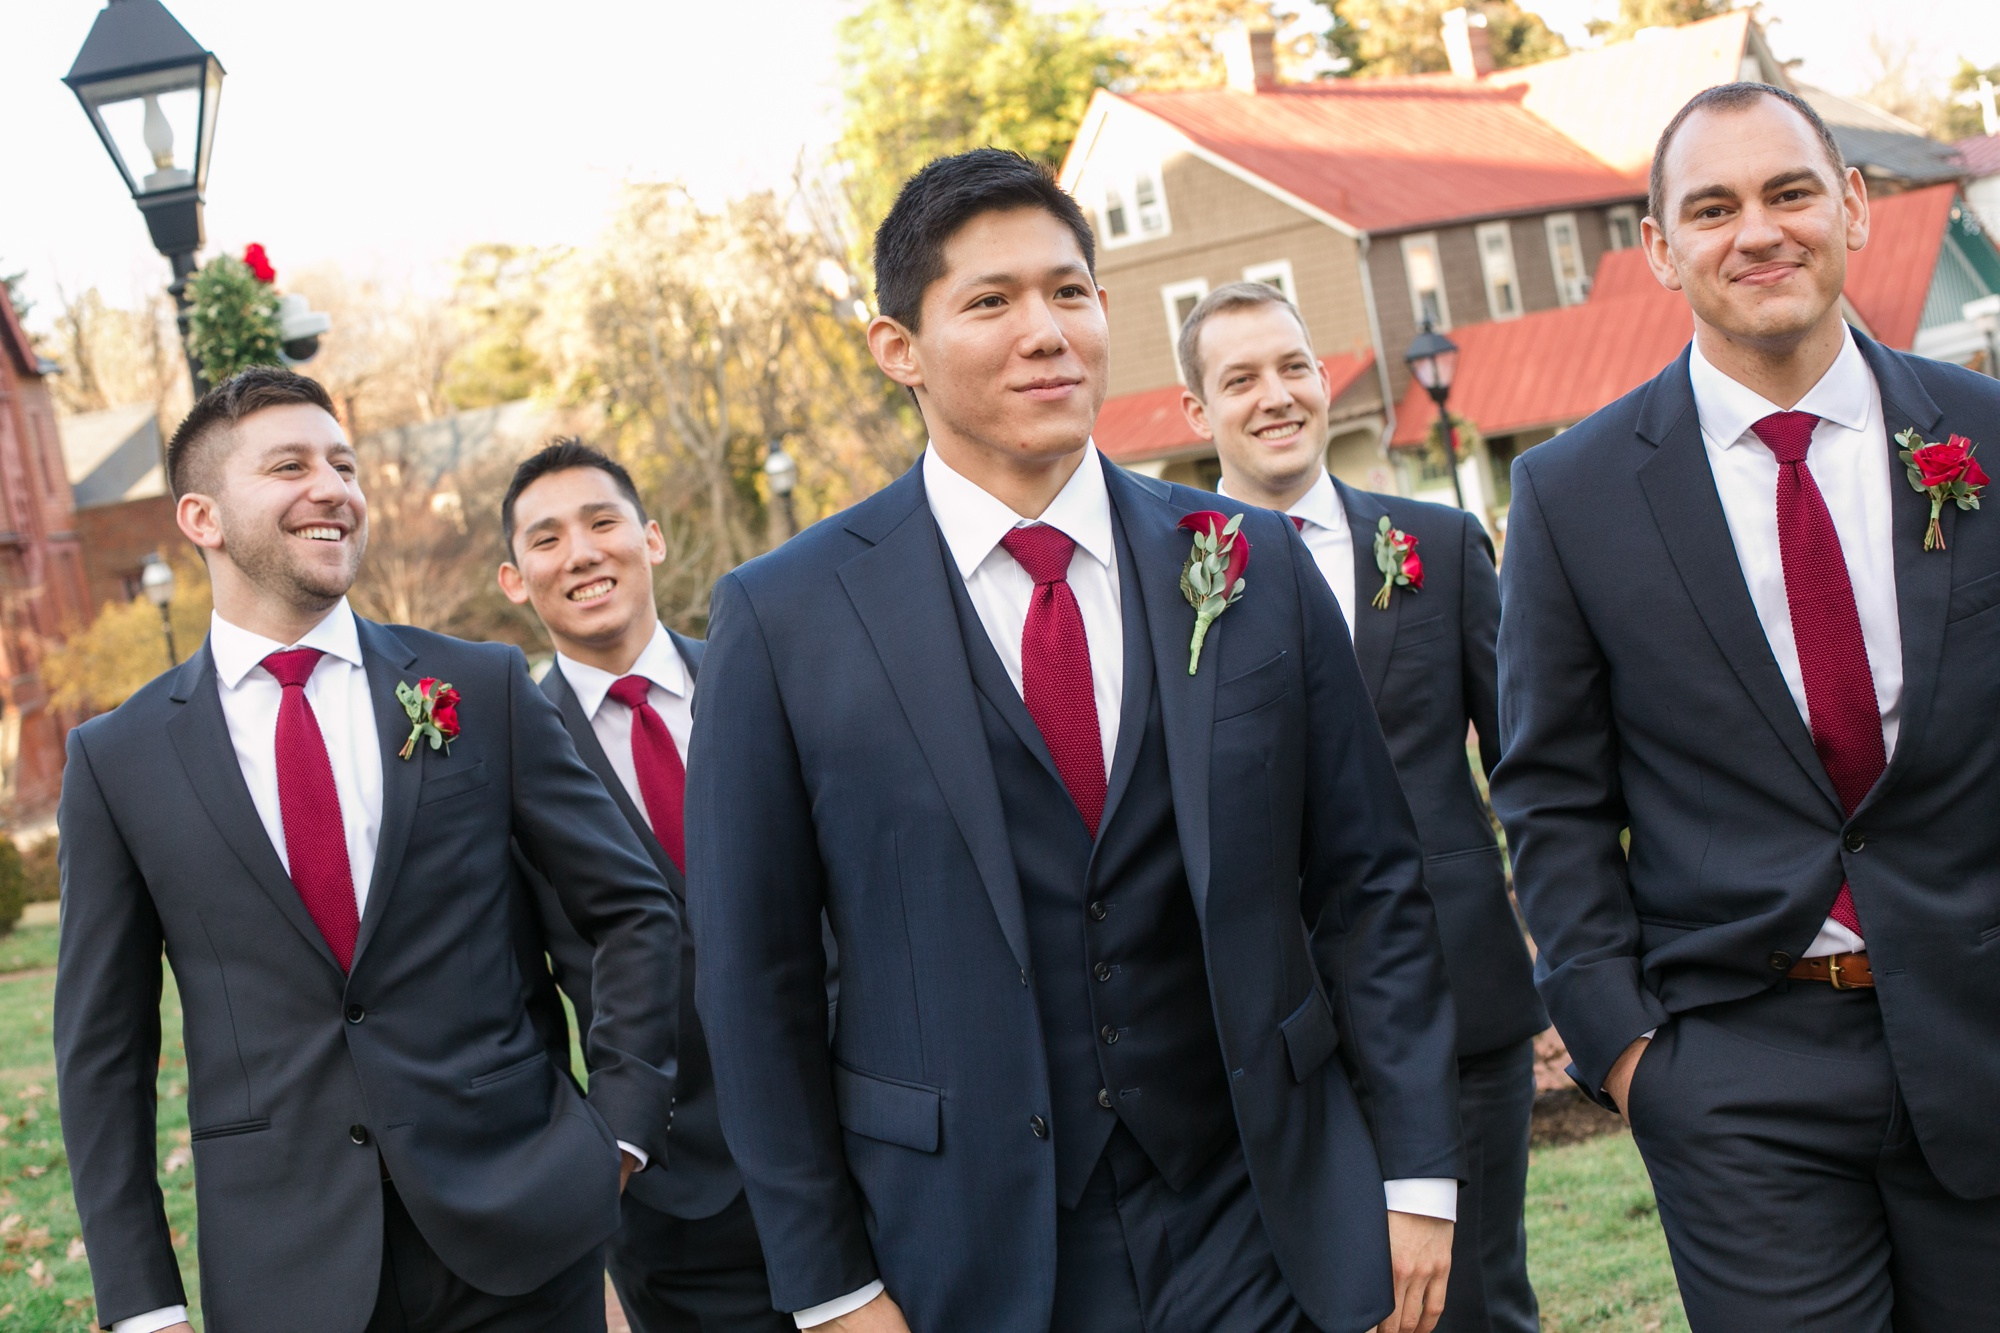 Maryland State House wedding groomsmen